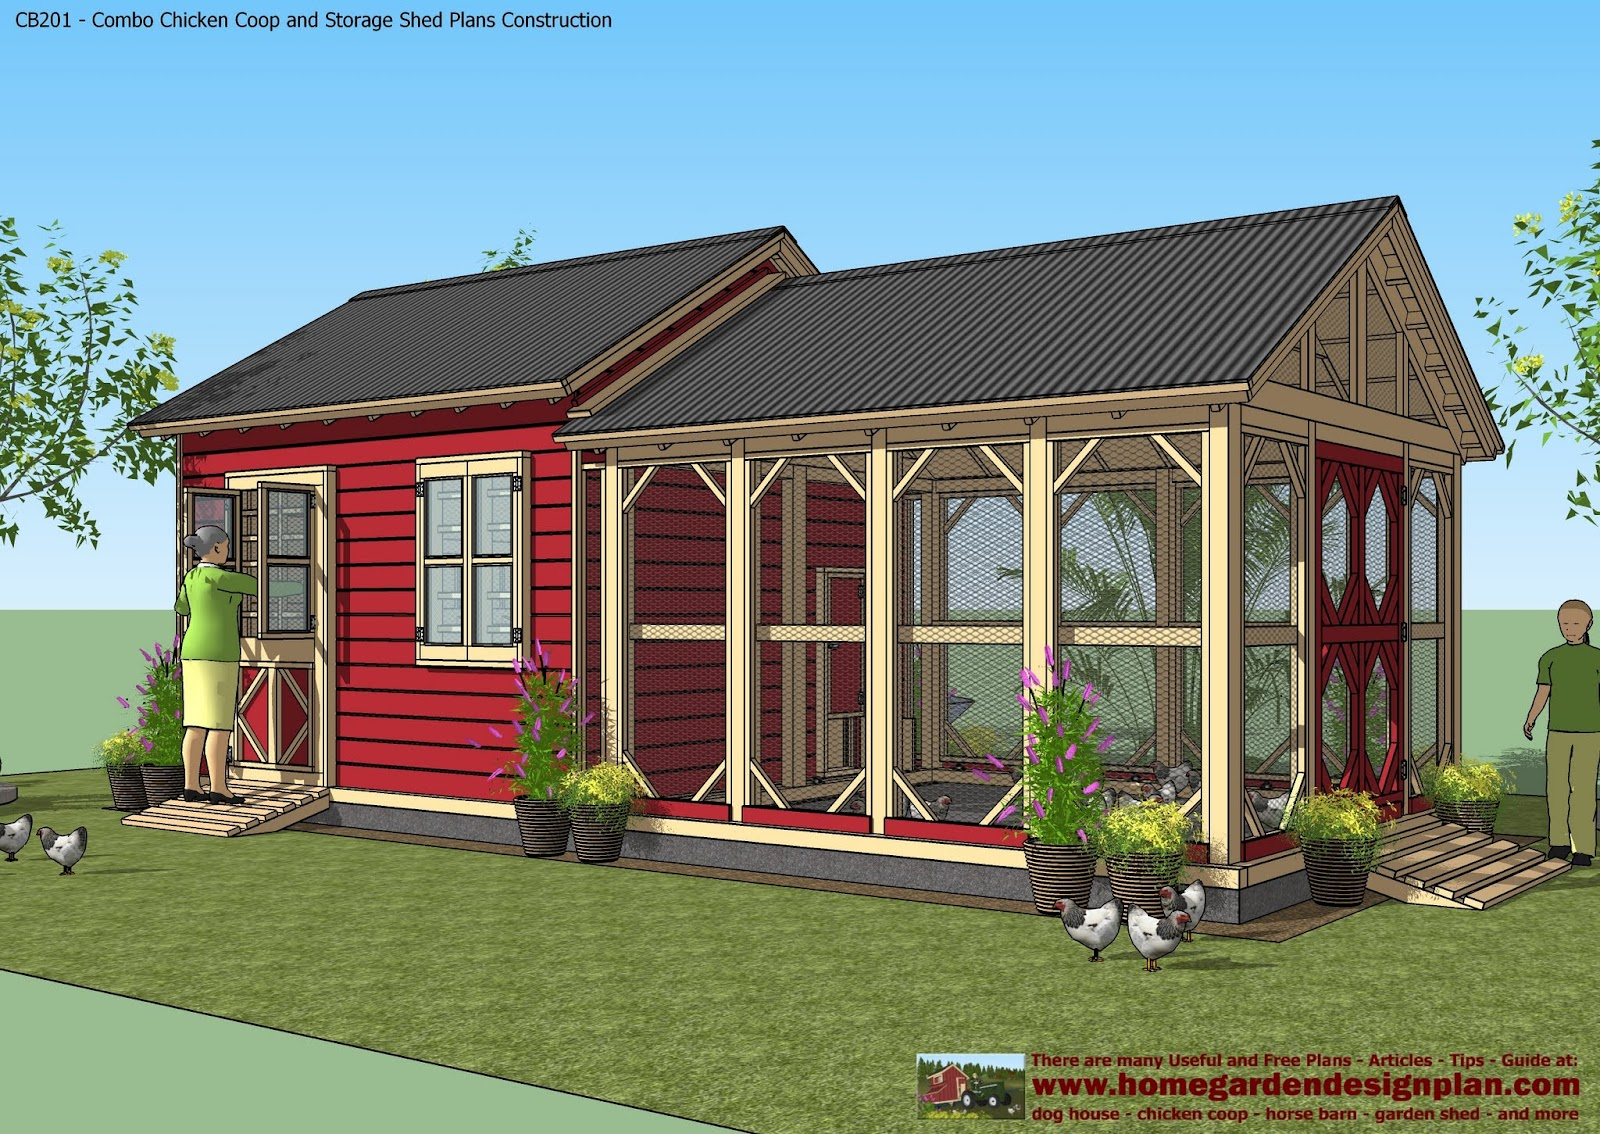 Home garden plans cb201 combo plans chicken coop for Homegardendesignplan